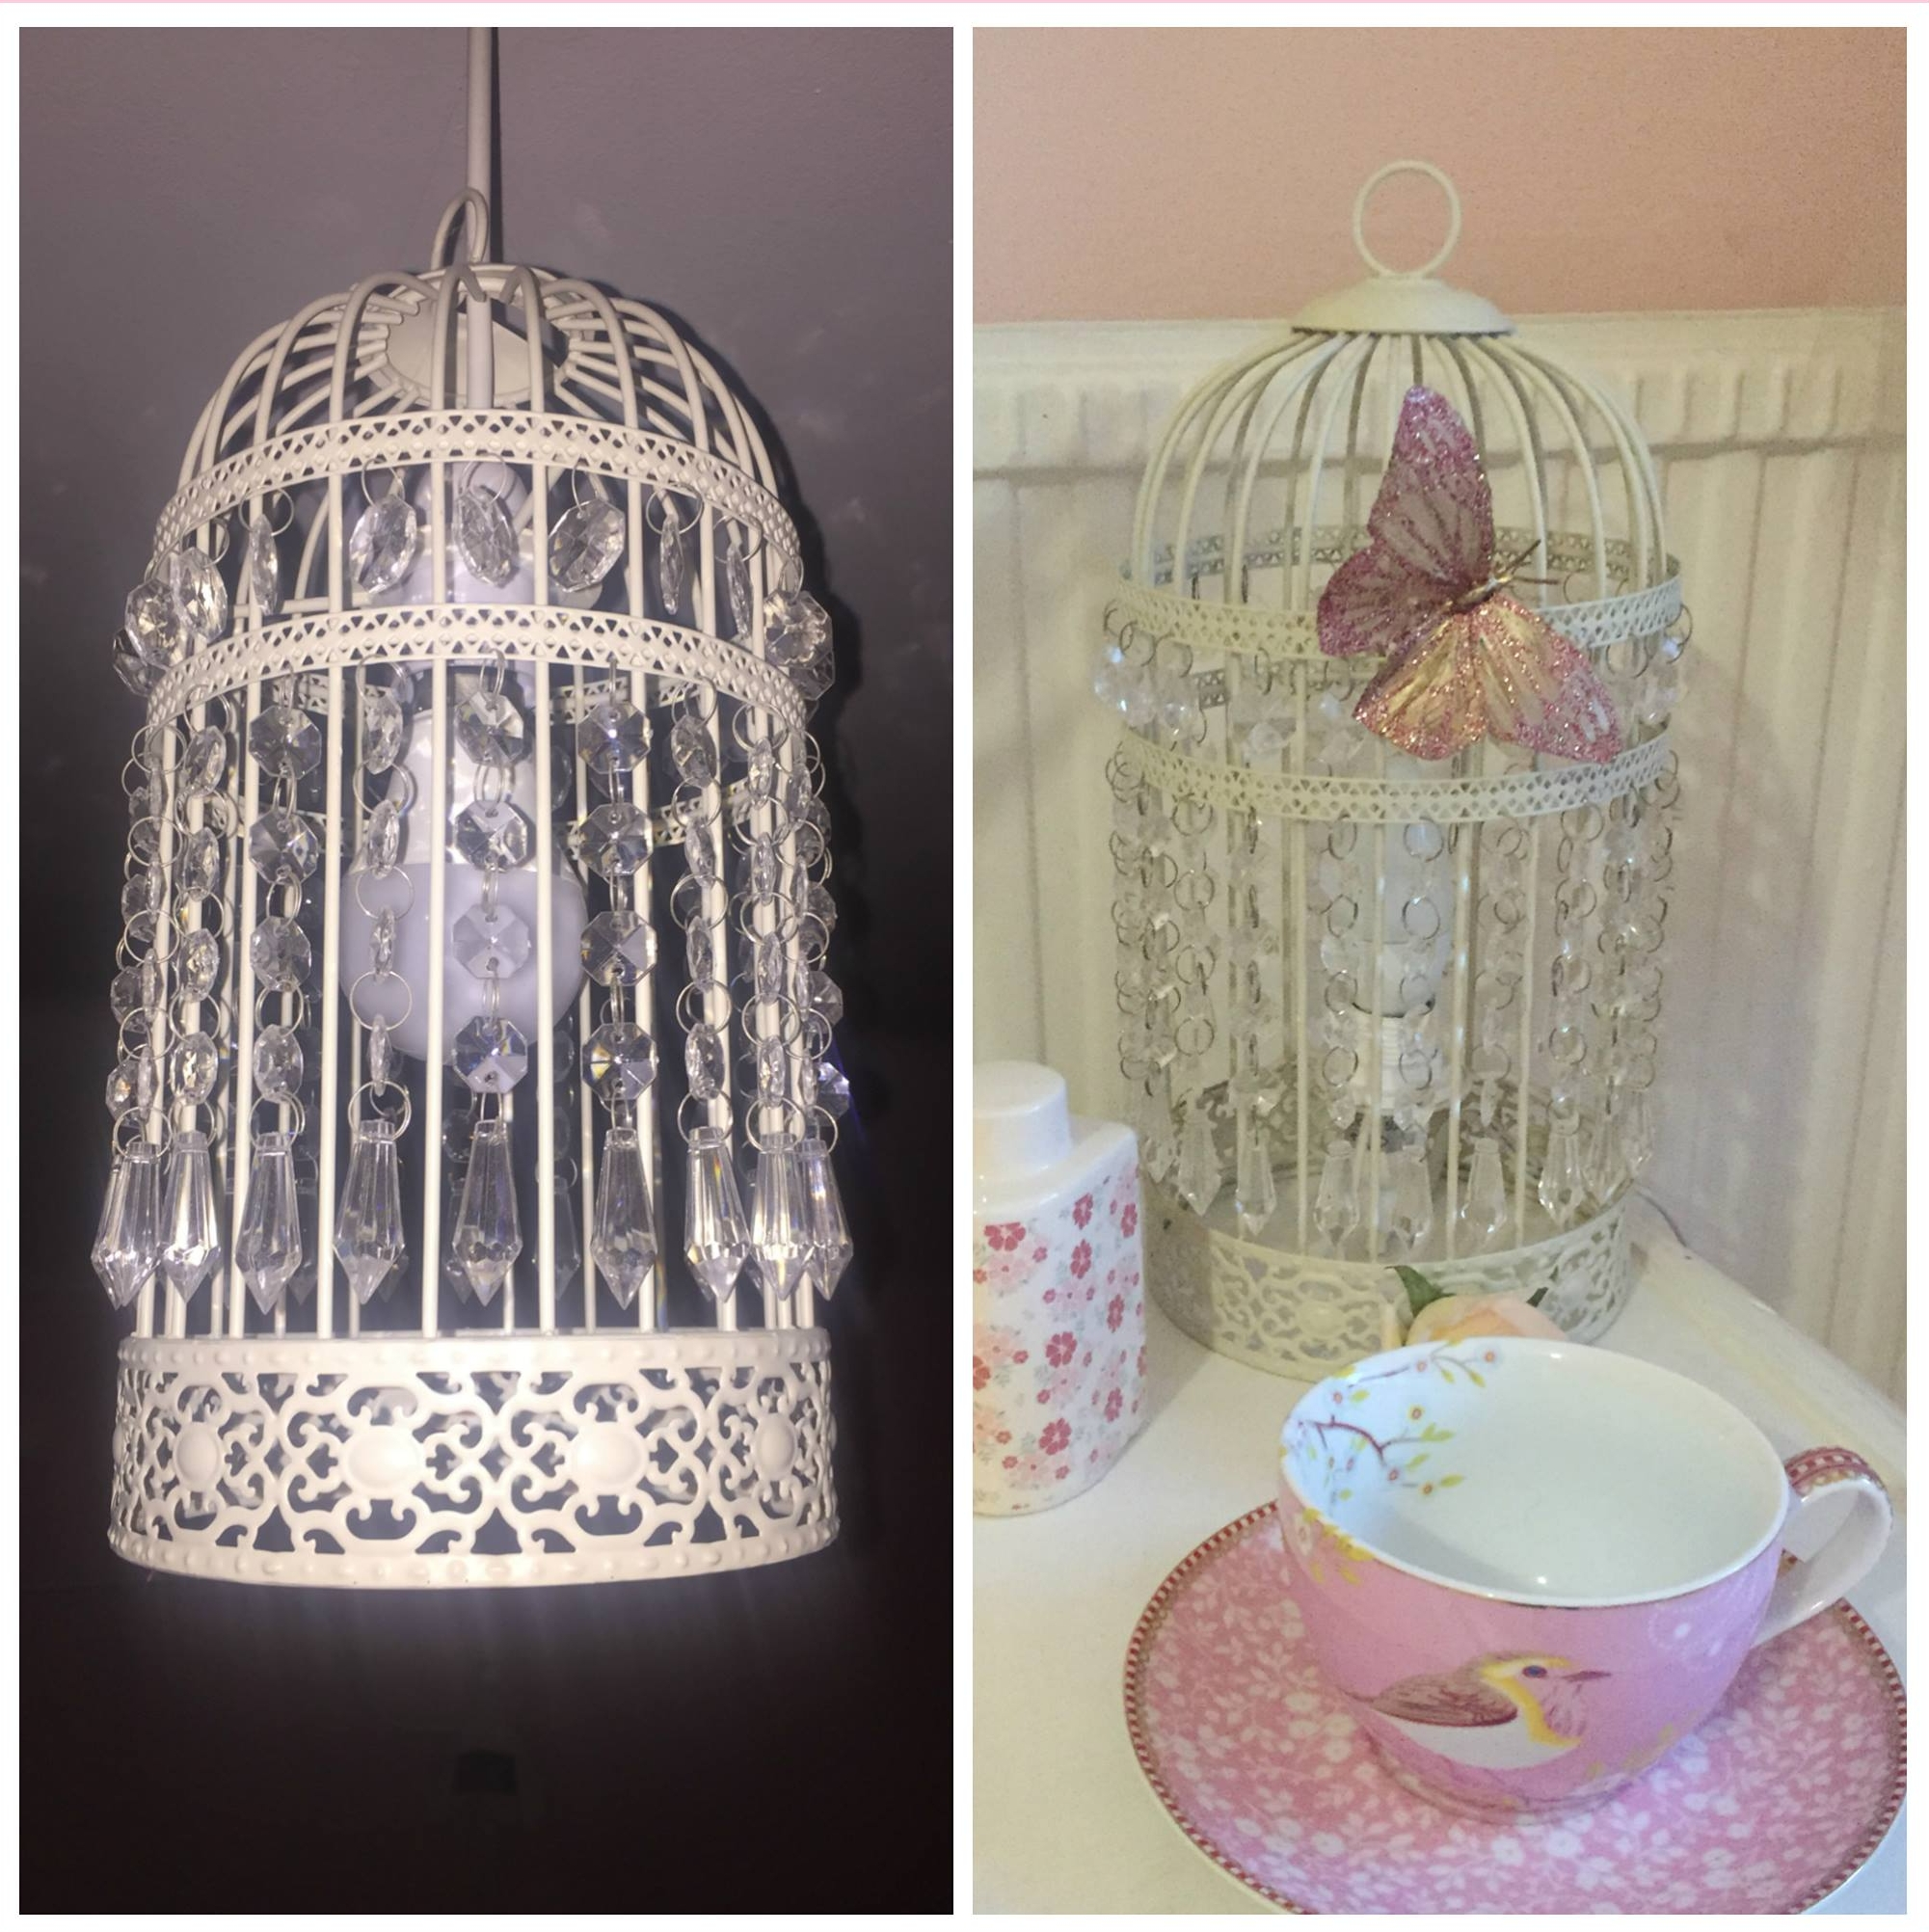 Birdcages lights links and prices:  Bird Cage Easy Fit Pendant £18.99 Homebase    Bird Cage - Table Lamp - Cream £16.99 Homebase